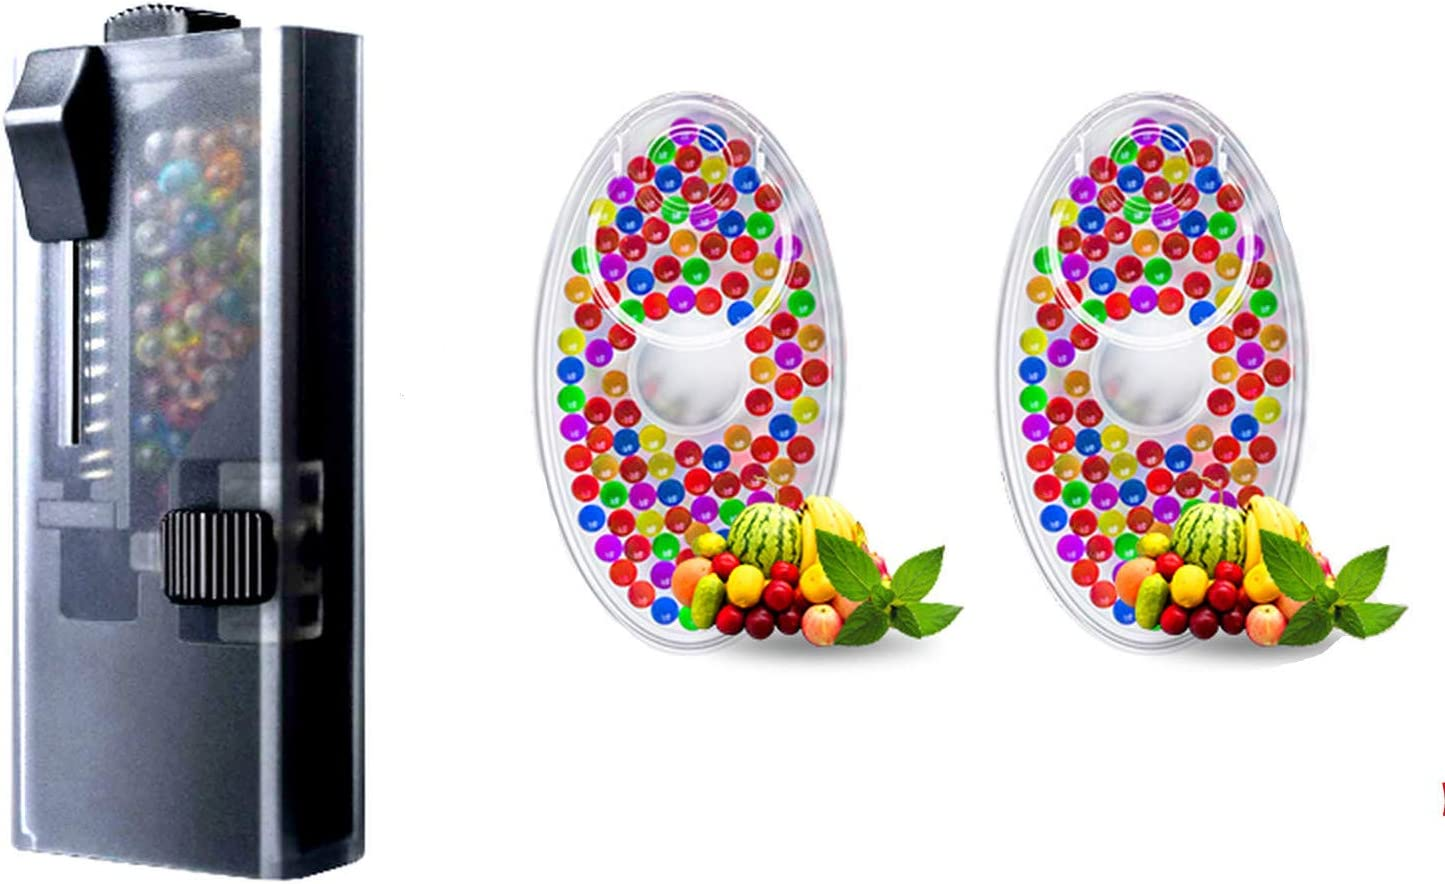 lilico 2021new shipping free DIY Cigarette Bead Mint Price reduction Burst Holder Flavor Cig